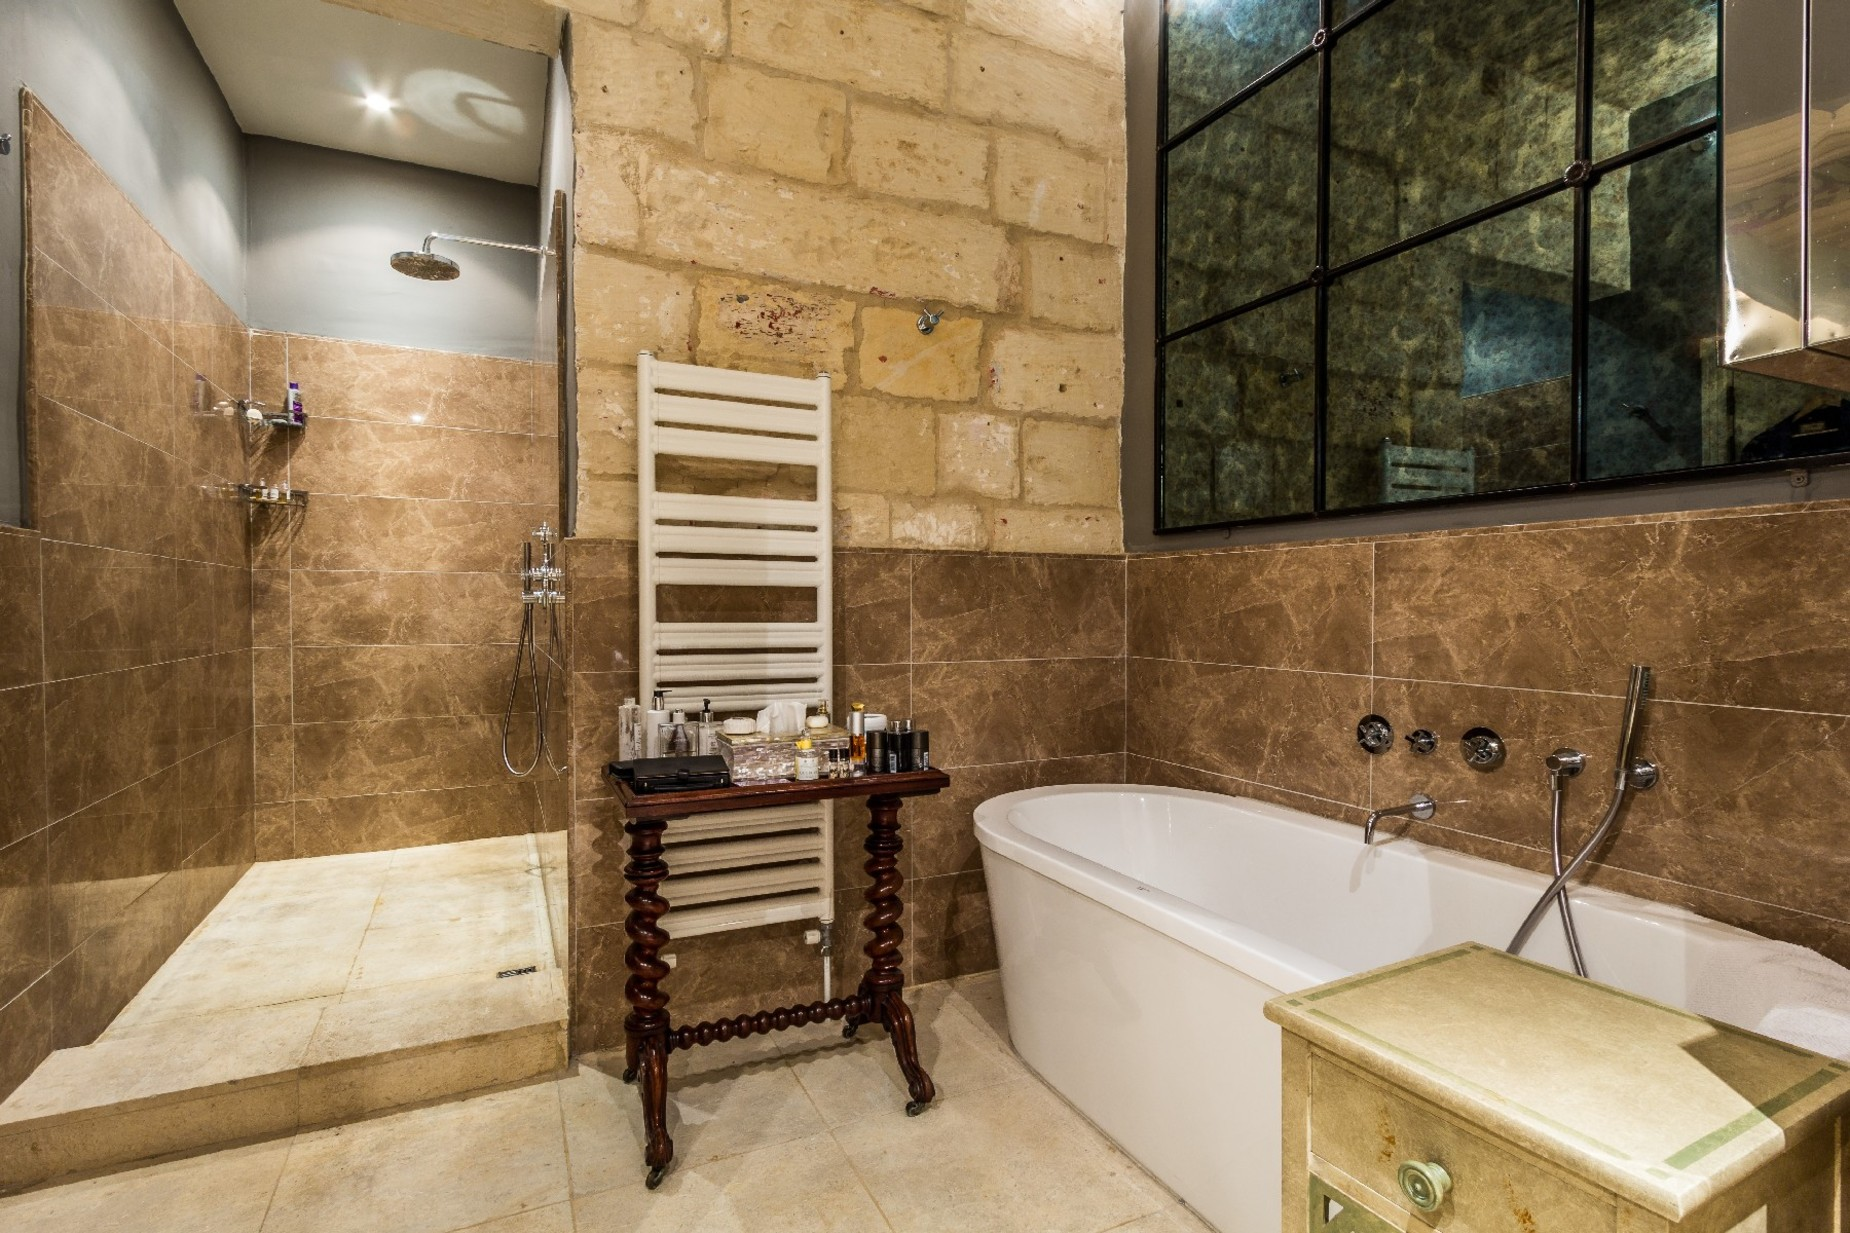 5 bed Town House For Rent in Cospicua, Cospicua - thumb 11